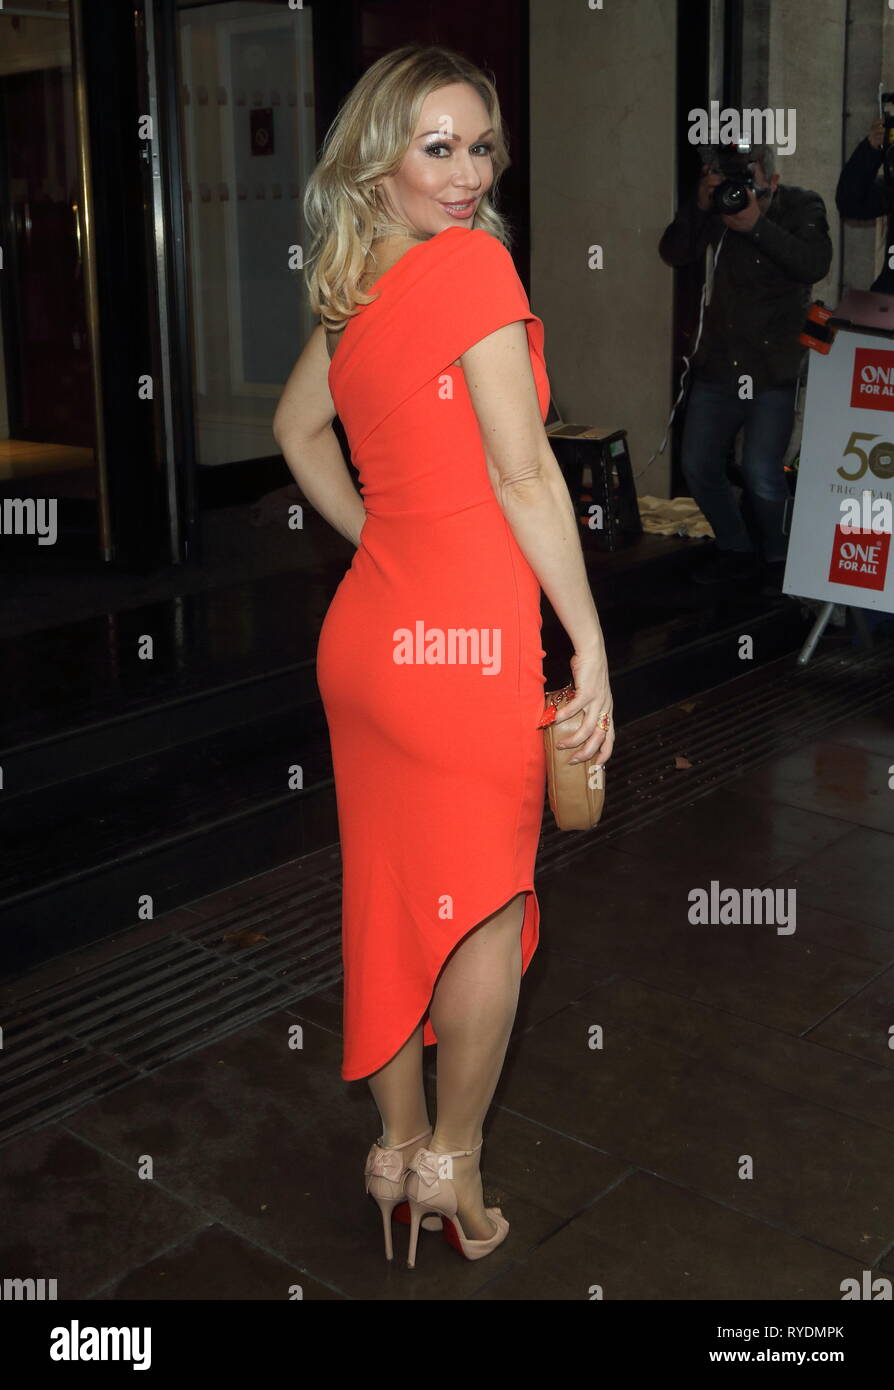 Kristina Rihanoff at The TRIC Awards (Television and Radio Industries Club Awards) at Grosvenor House, Park Lane - Stock Image